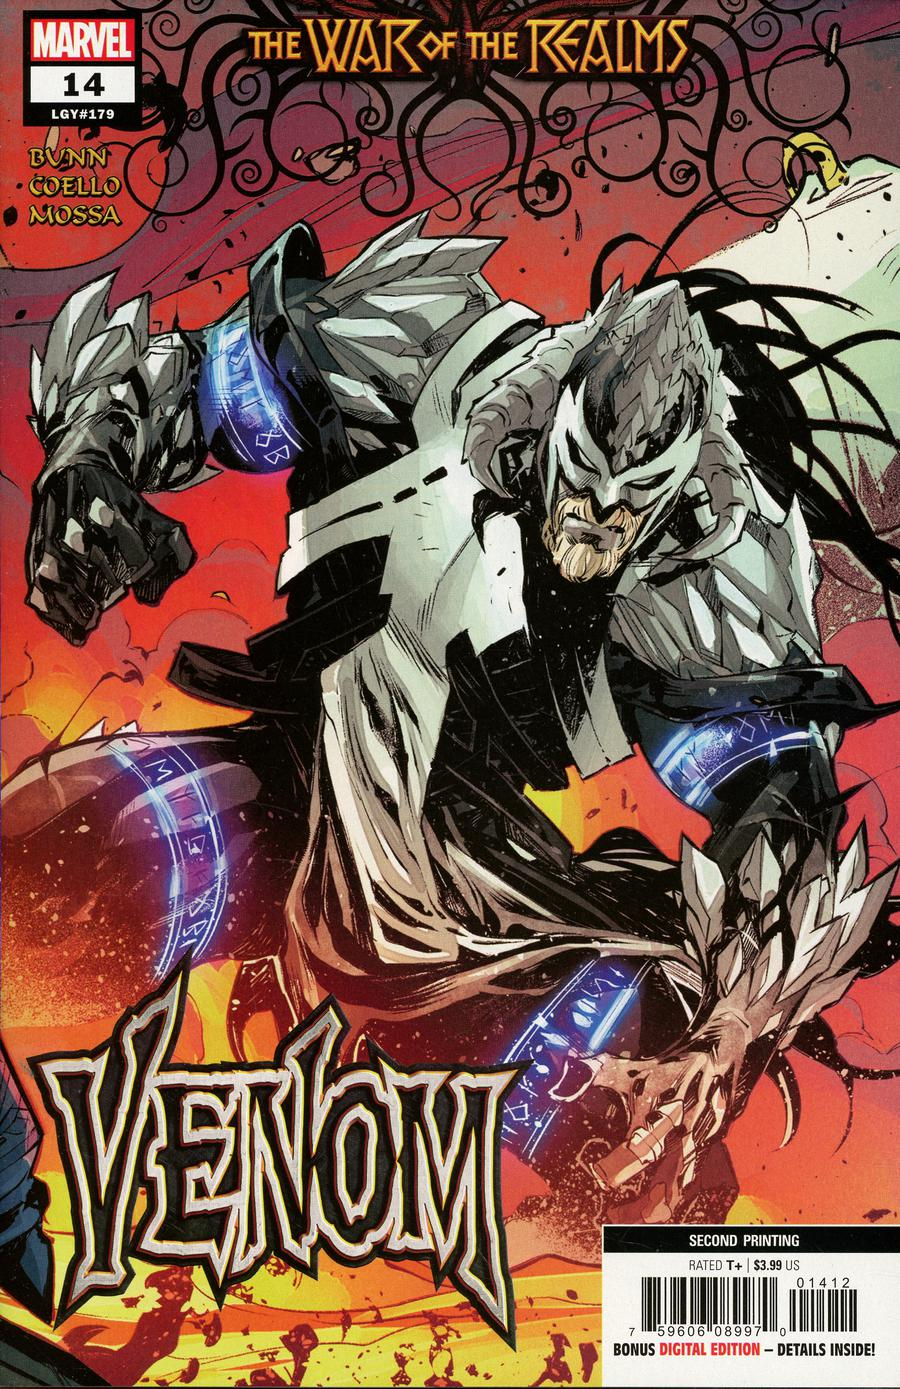 Venom Vol 4 #14 Cover D 2nd Ptg Variant Iban Coello Cover (War Of The Realms Tie-In)